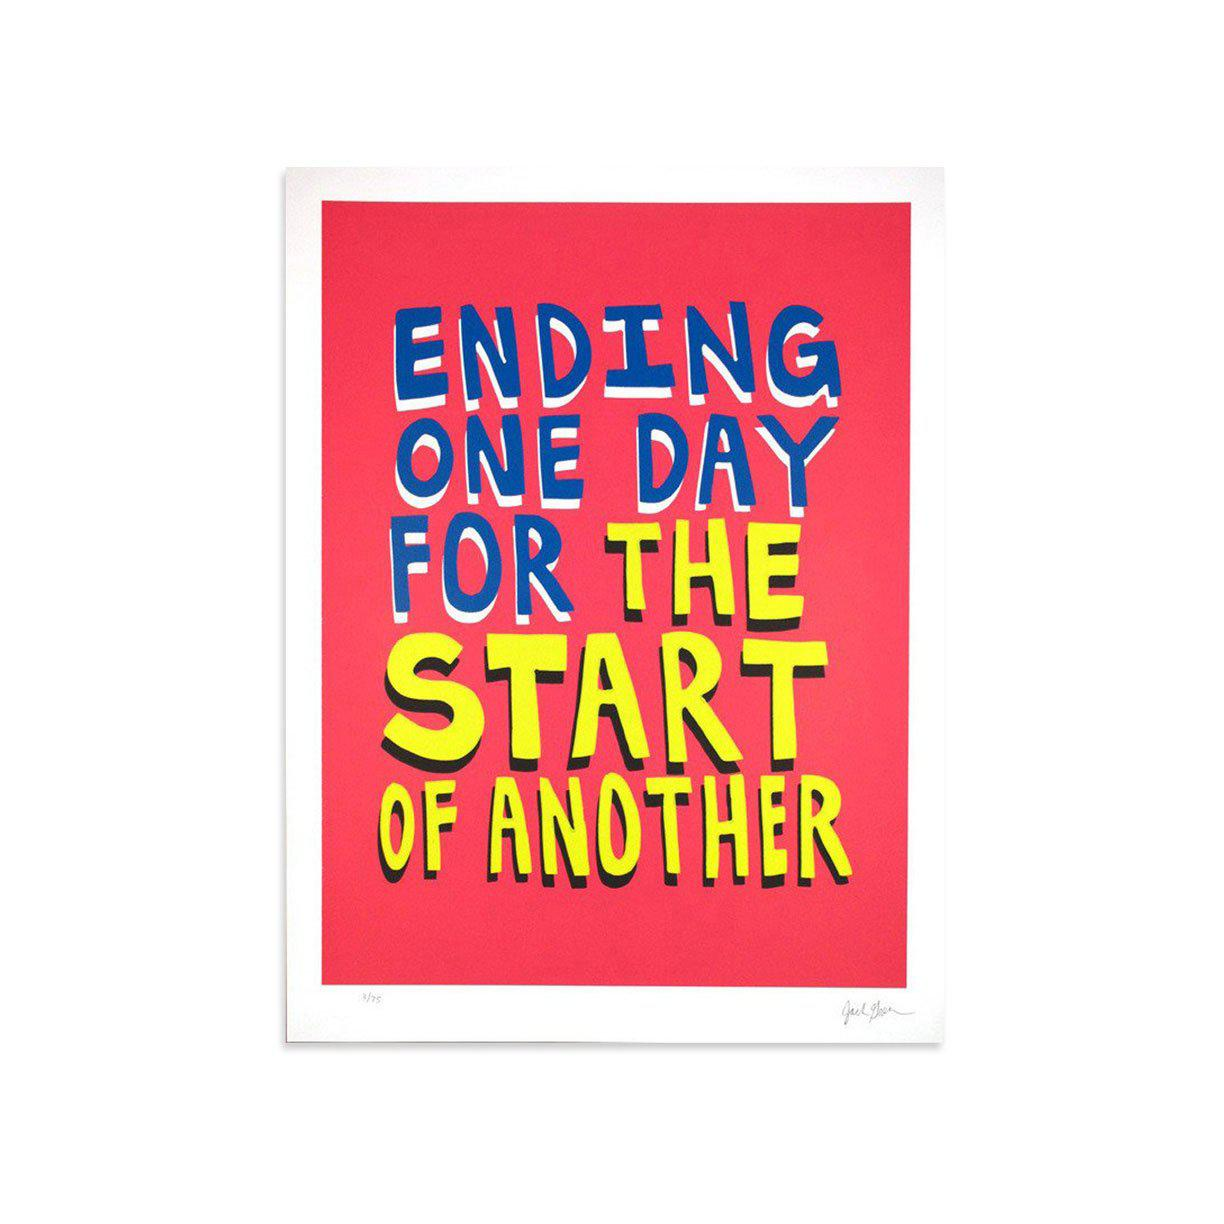 Ending One Day For the Start Of Another by Jack Greer | Print | Poster Child Prints